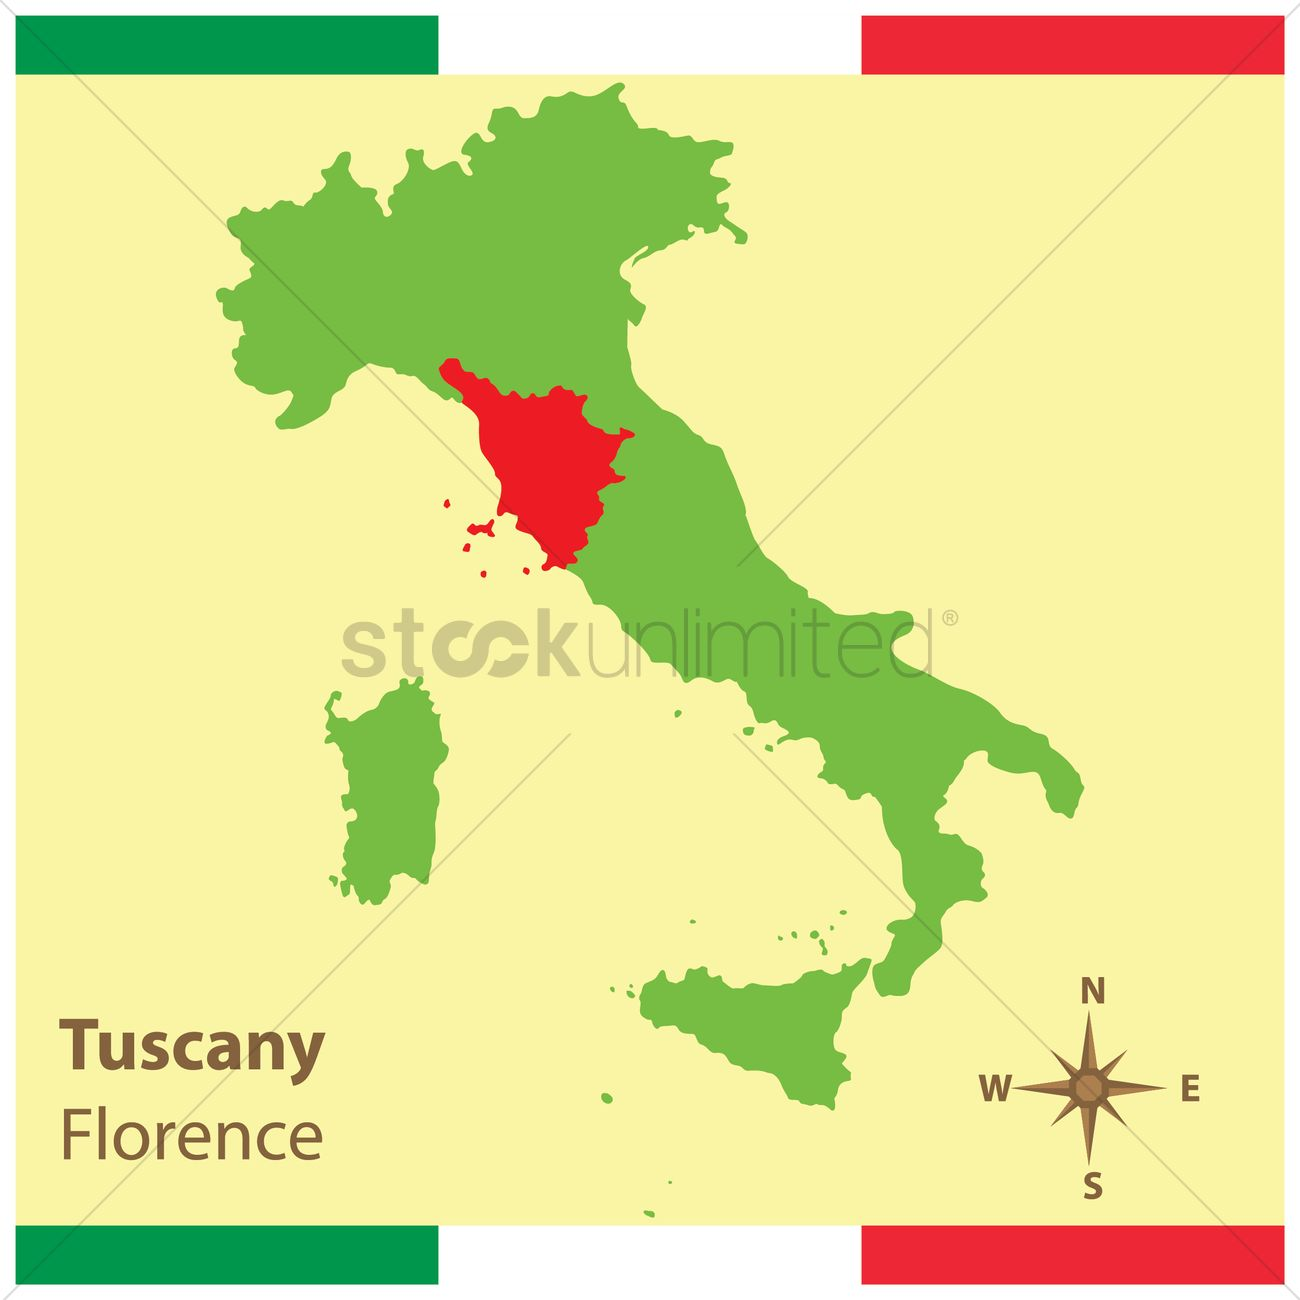 Tuscany on italy map Vector Image - 1583943 | StockUnlimited